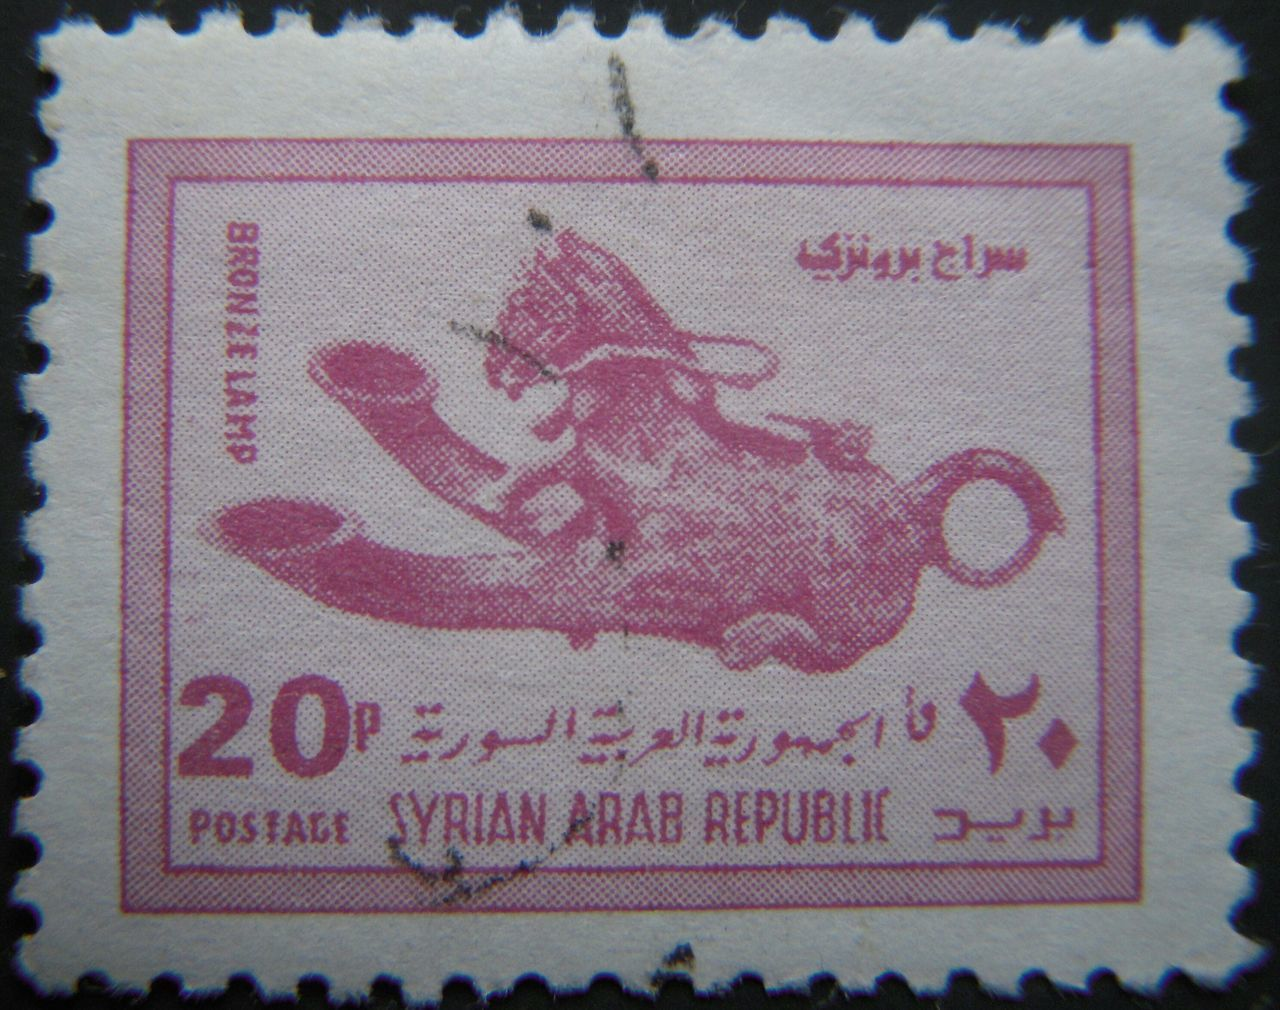 Syrian Arab Republic Postage Stamps Cornucopia Gift Commemorate History Business Finance And Industry Collections Paper Collectibles Bronzelamp Communication Overprint Stamp Philately Perforated Paper Creativity Graffiti Petroleum Lamp Arts Culture And Entertainment Purplerose Color Antique